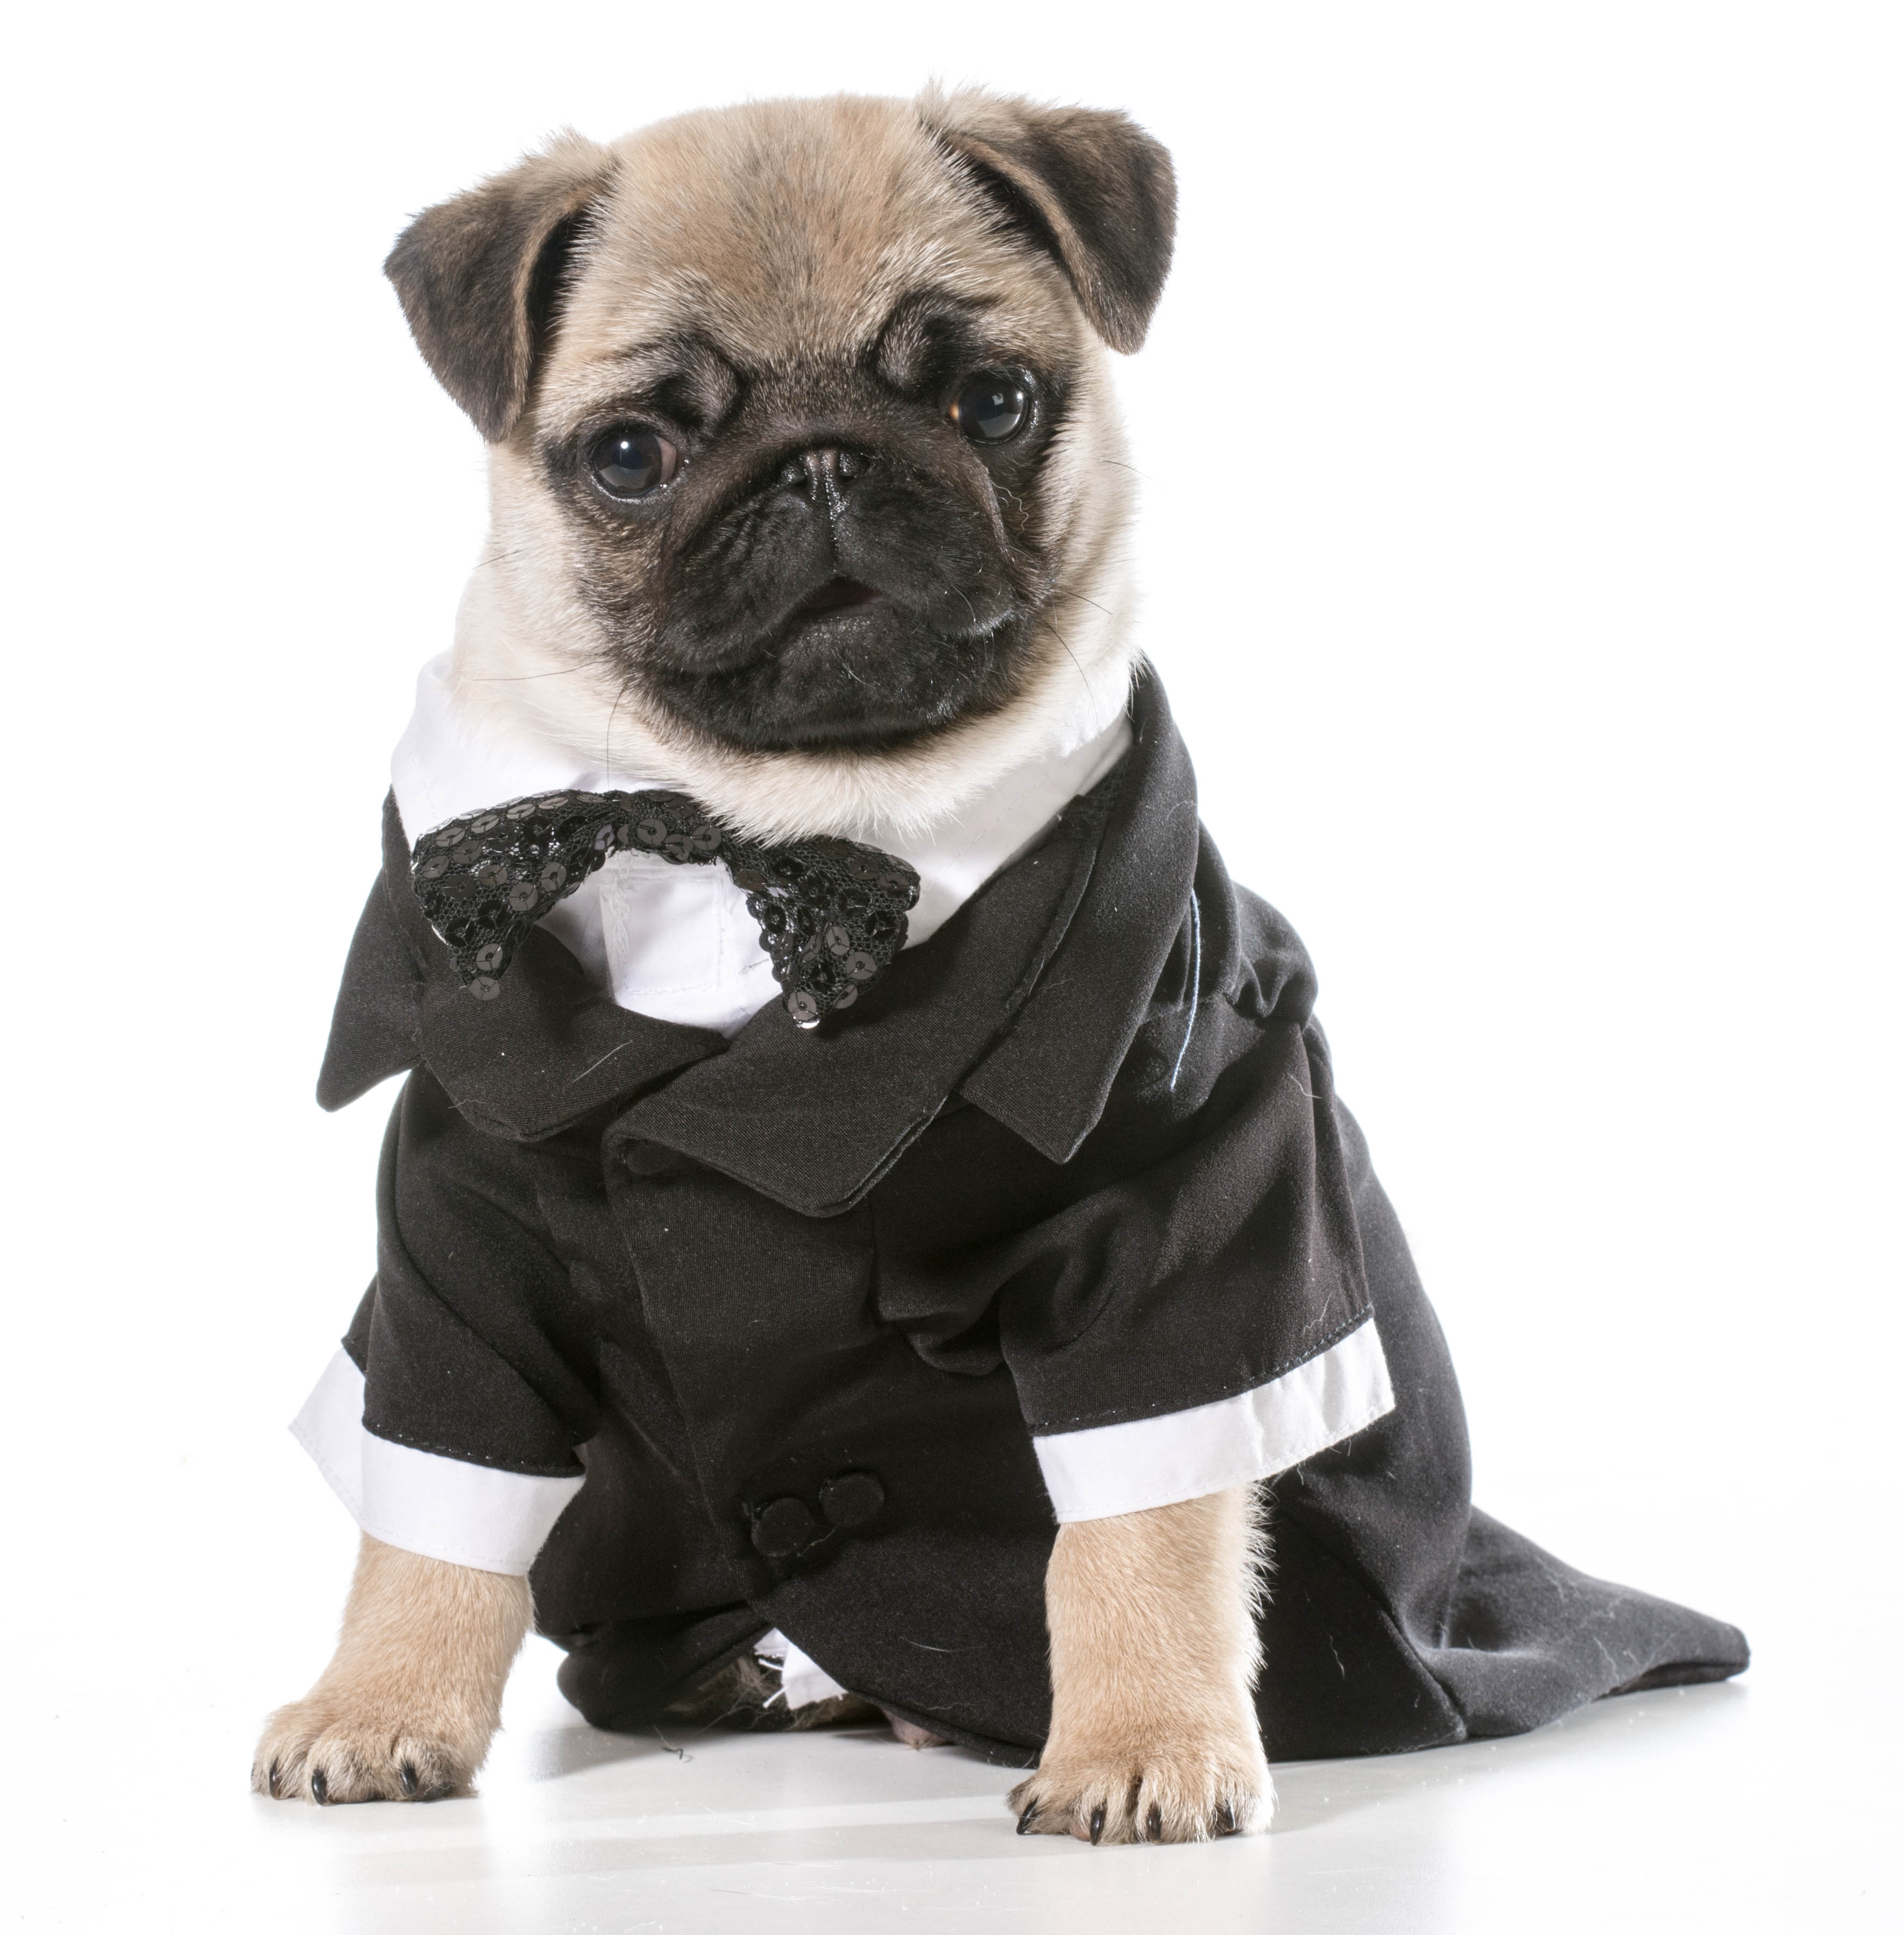 Pug in a tuxedo(WilleeCole/Getty Images)